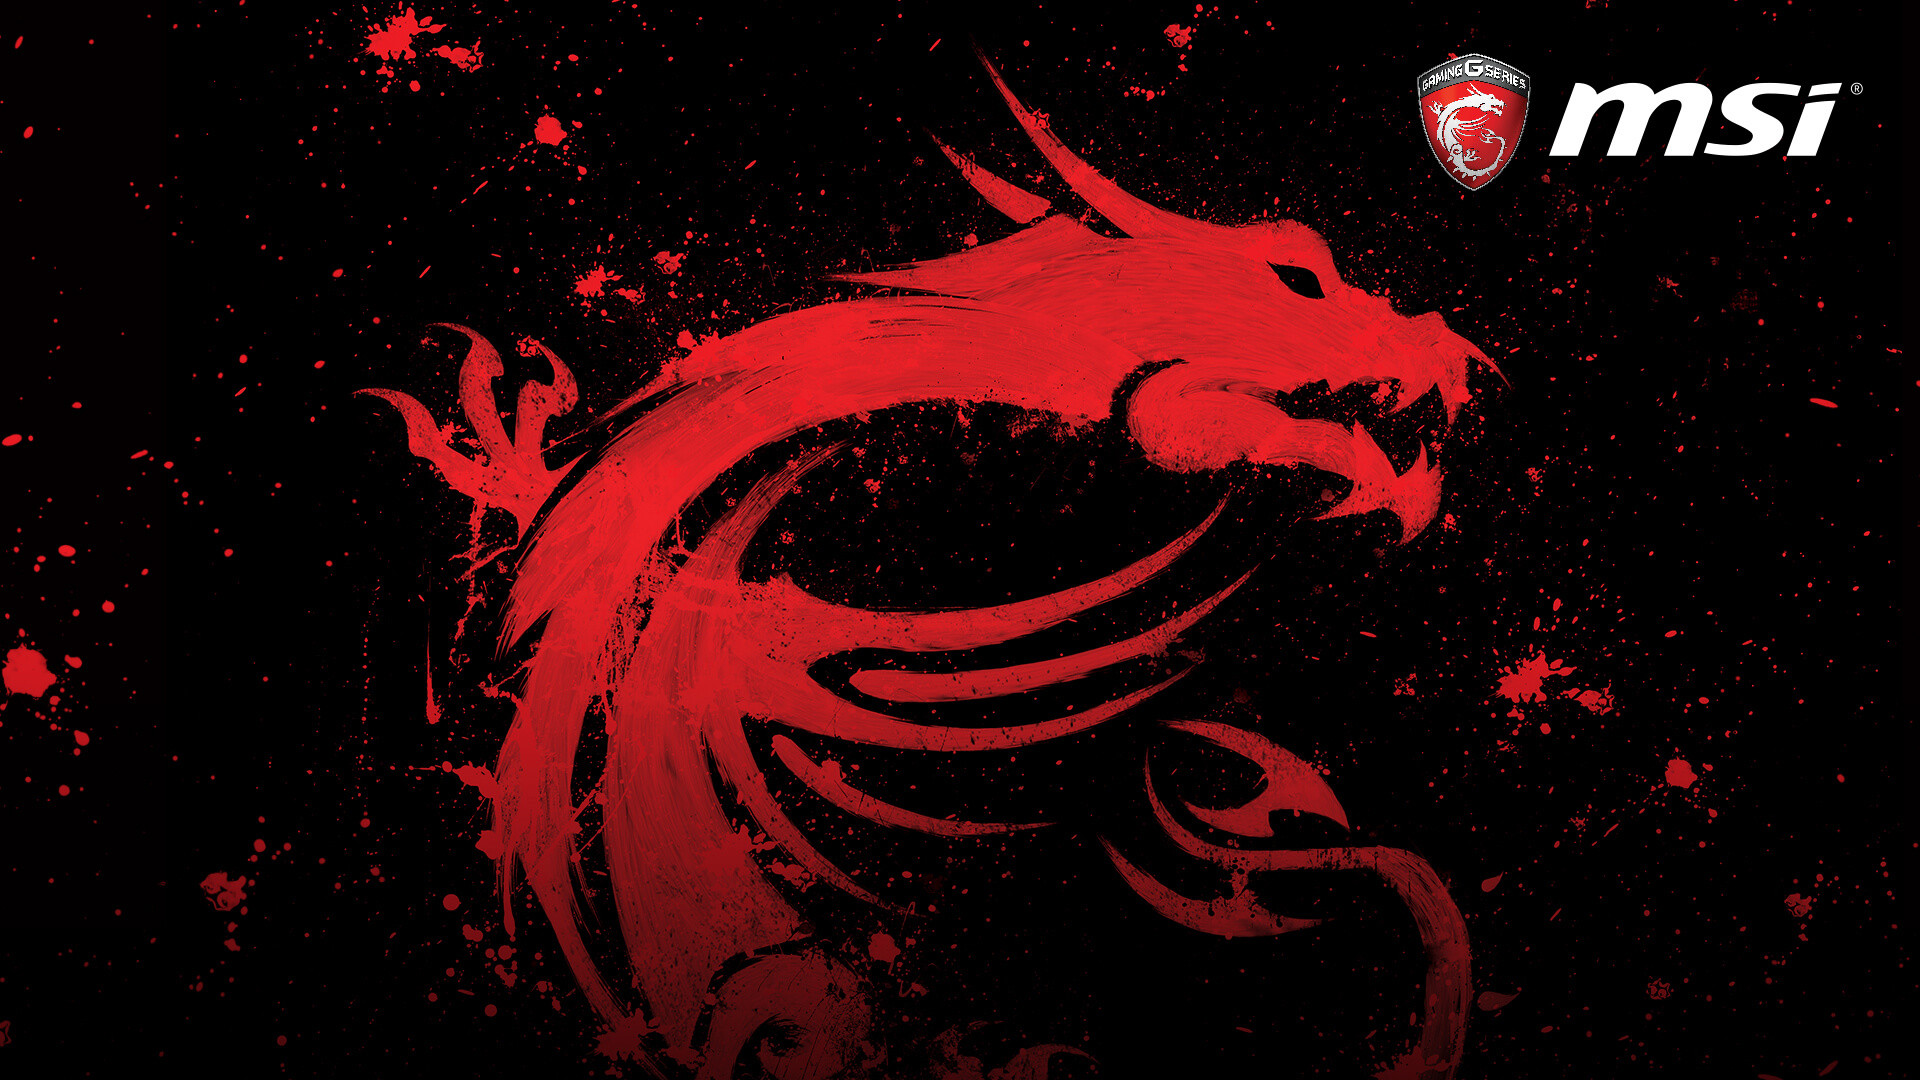 10 Latest Pc Gaming Backgrounds 1920x1080 Full Hd 1920: MSI Wallpaper 1080p (82+ Images